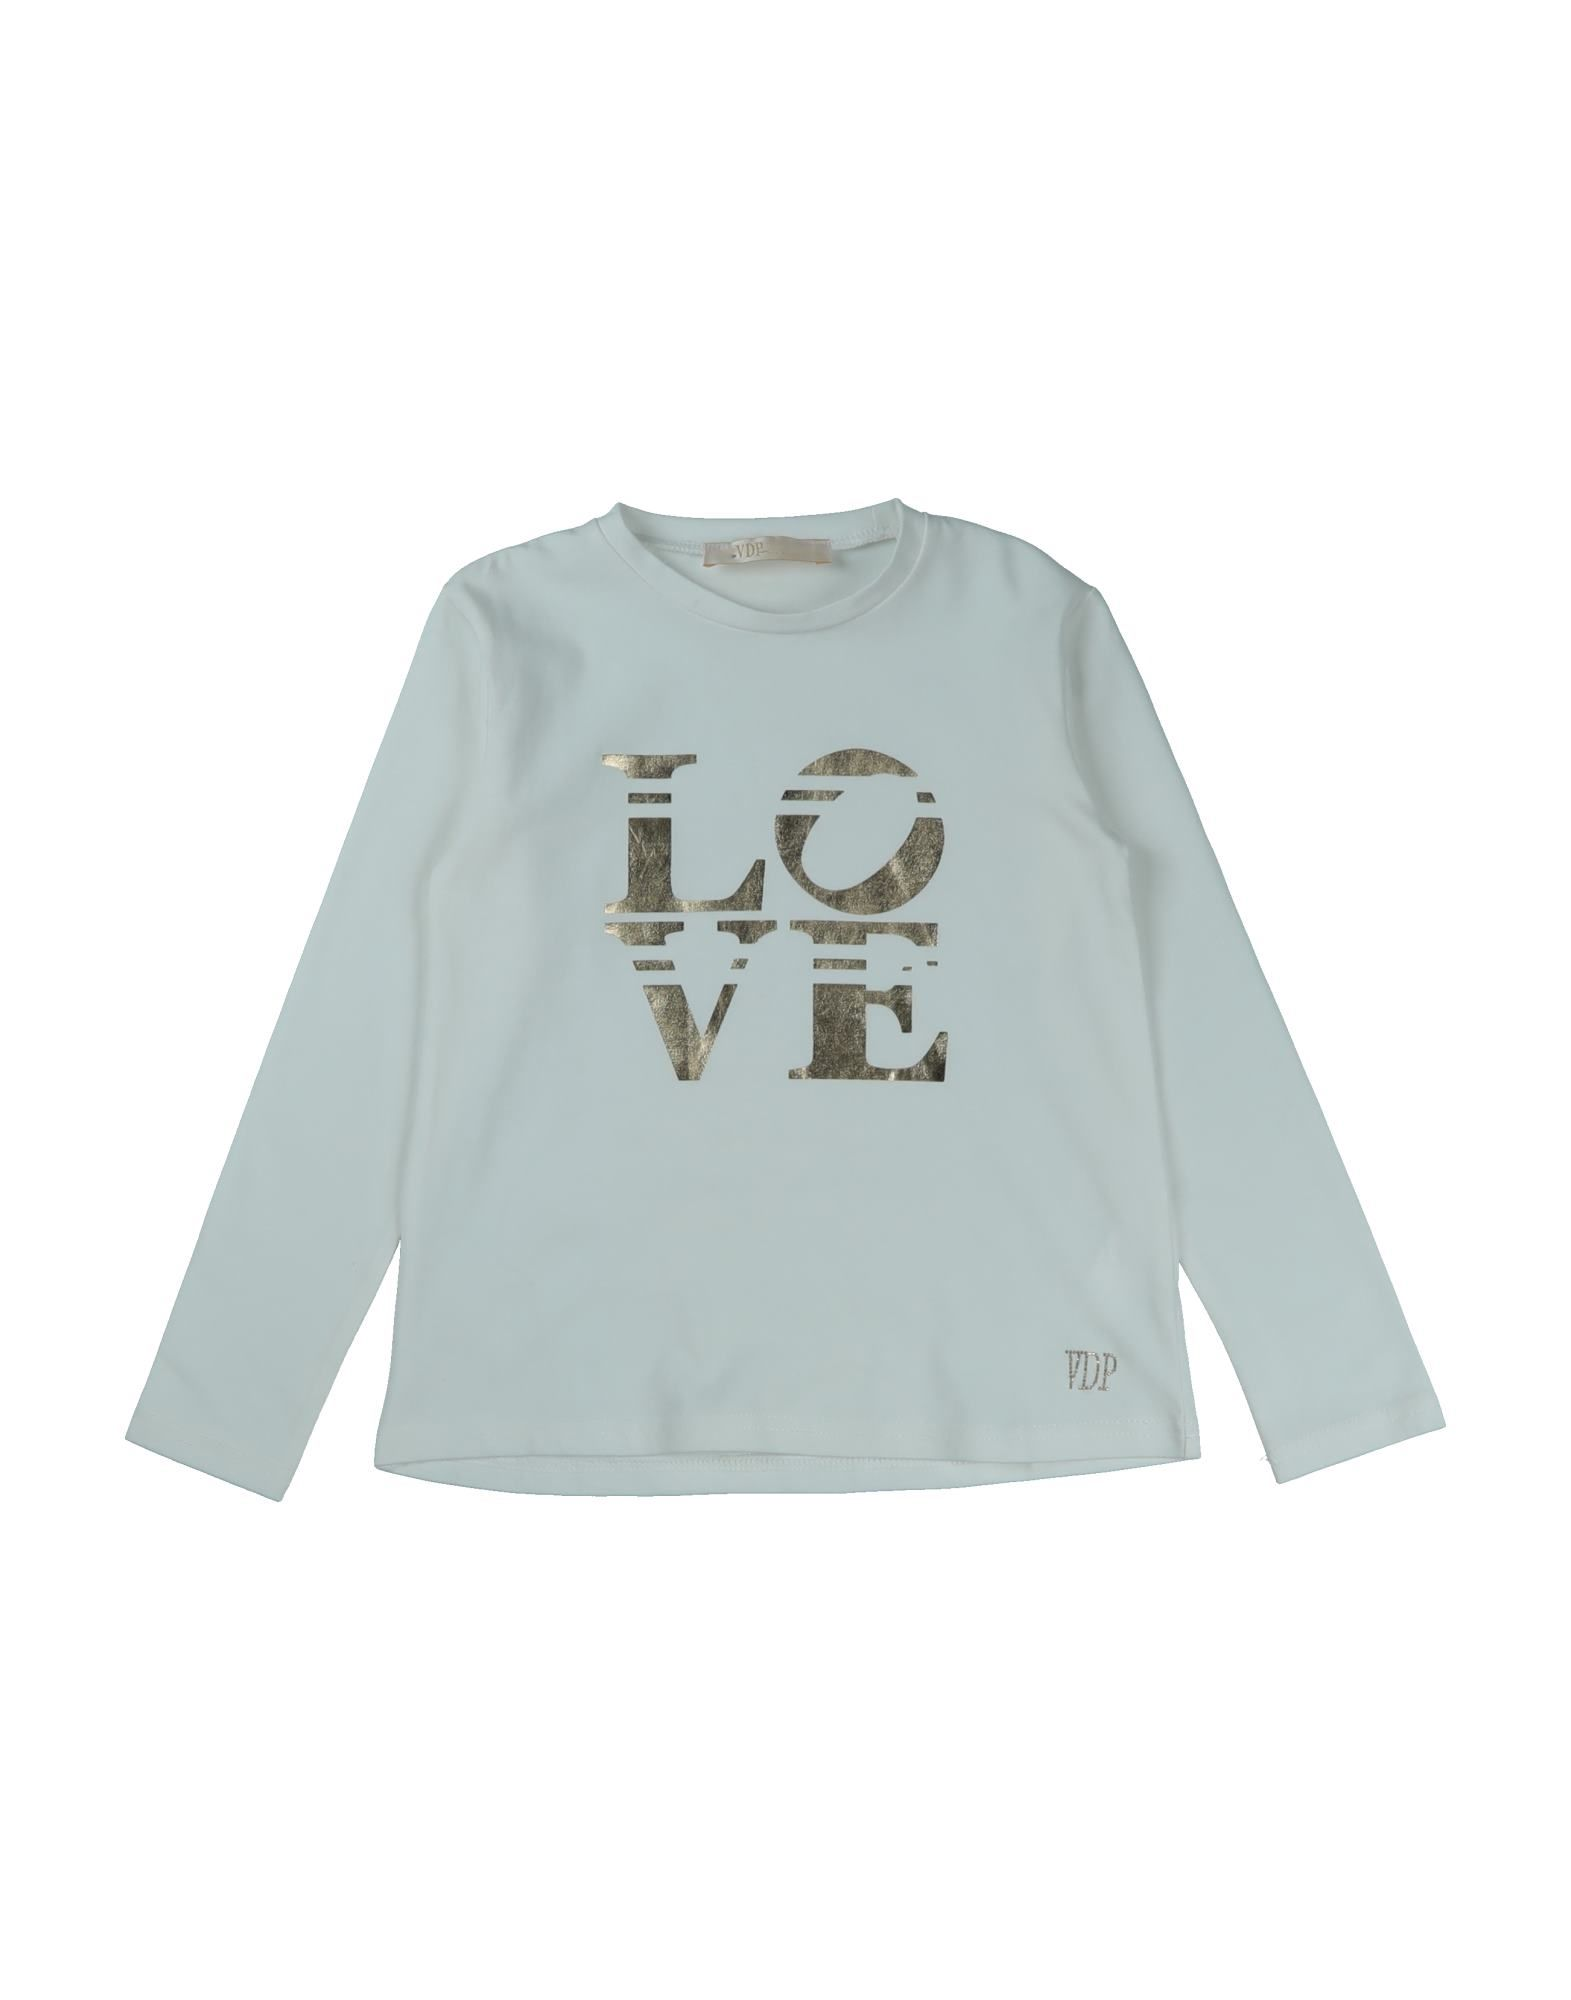 Vdp Collection Kids' T-shirts In Blue